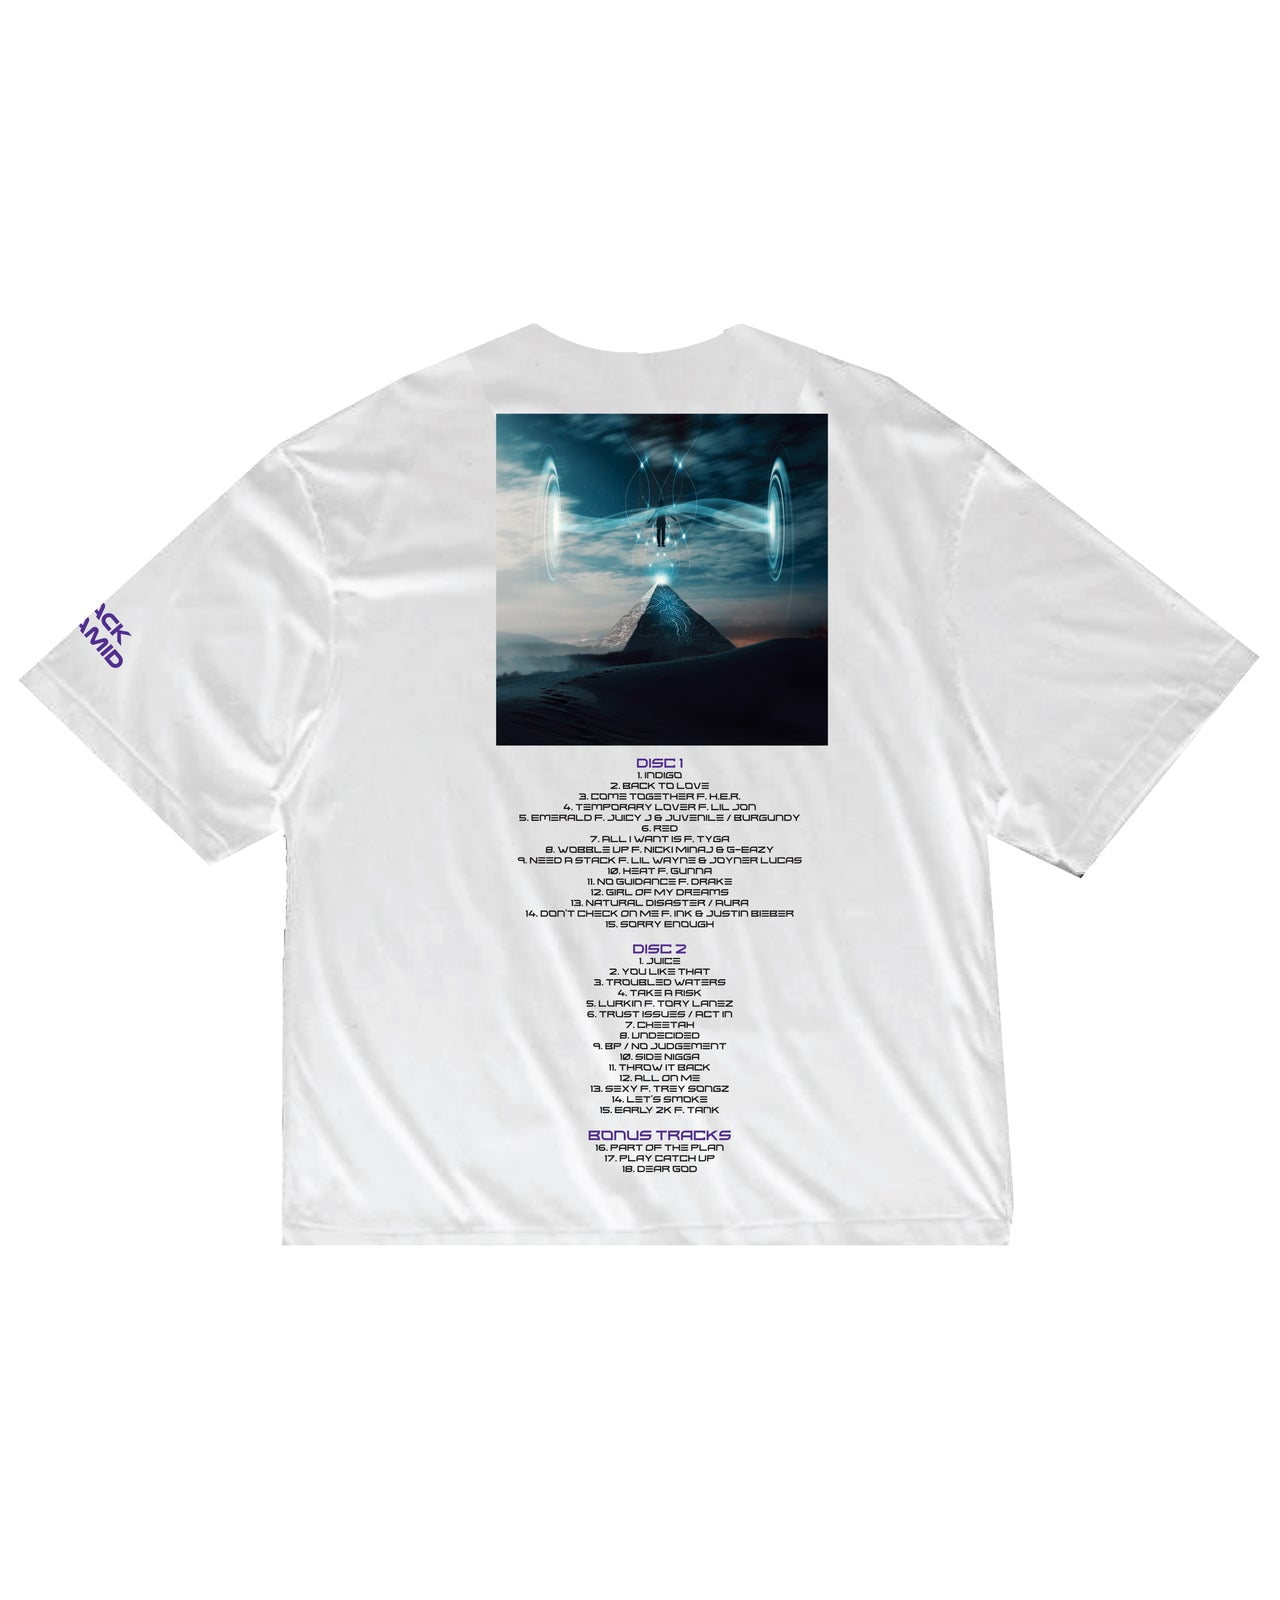 INDIGO BOX COVER SHIRT AND DIGITAL ALBUM-COLOR: WHITE